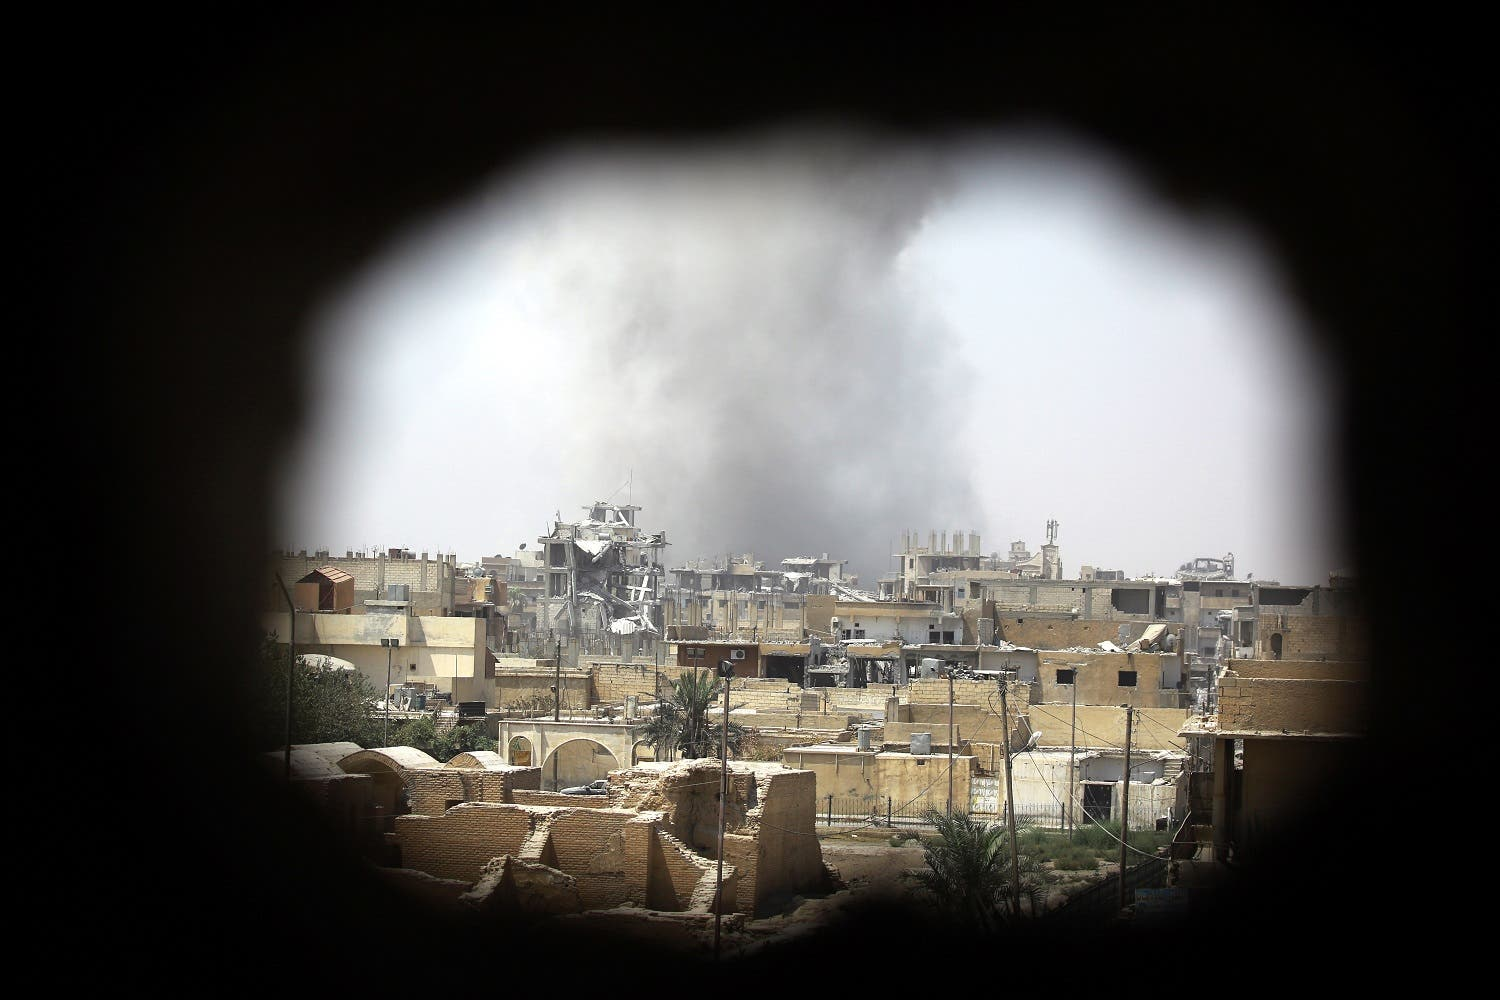 Smoke rises from building in Raqa's eastern al-Sanaa neighbourhood, on the edge of the old city, on August 13, 2017, as Syrian Democratic Forces (SDF), a US backed Kurdish-Arab alliance, battle to retake the city from the Islamic State (IS) group. (AFP)